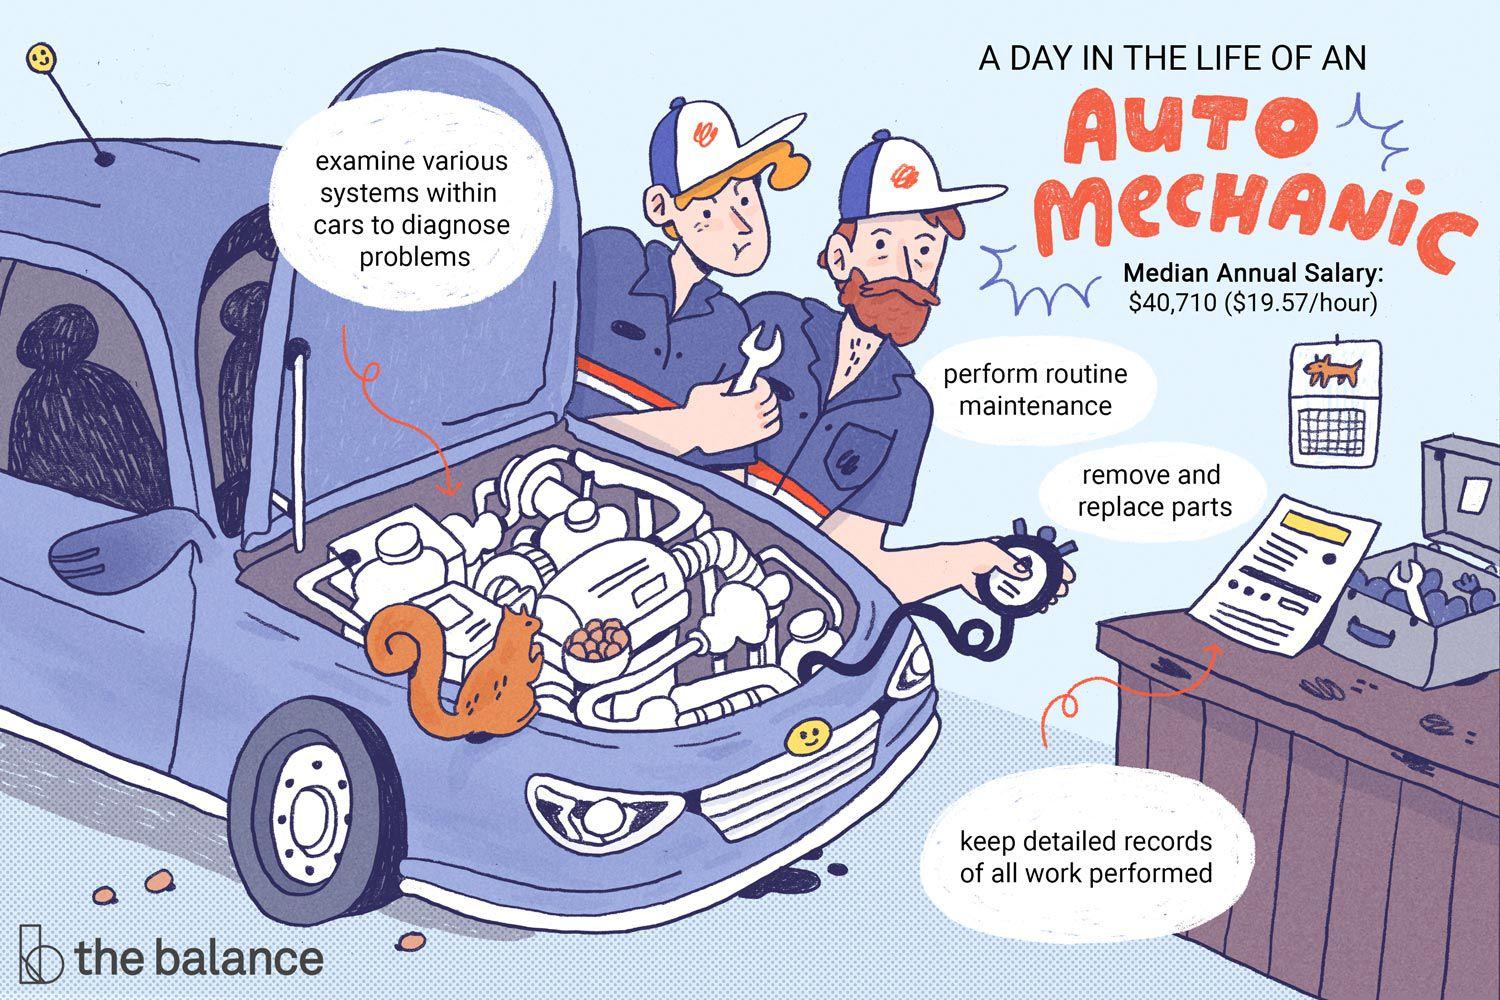 Automotive Mechanic Job Description: Salary, Skills, & More